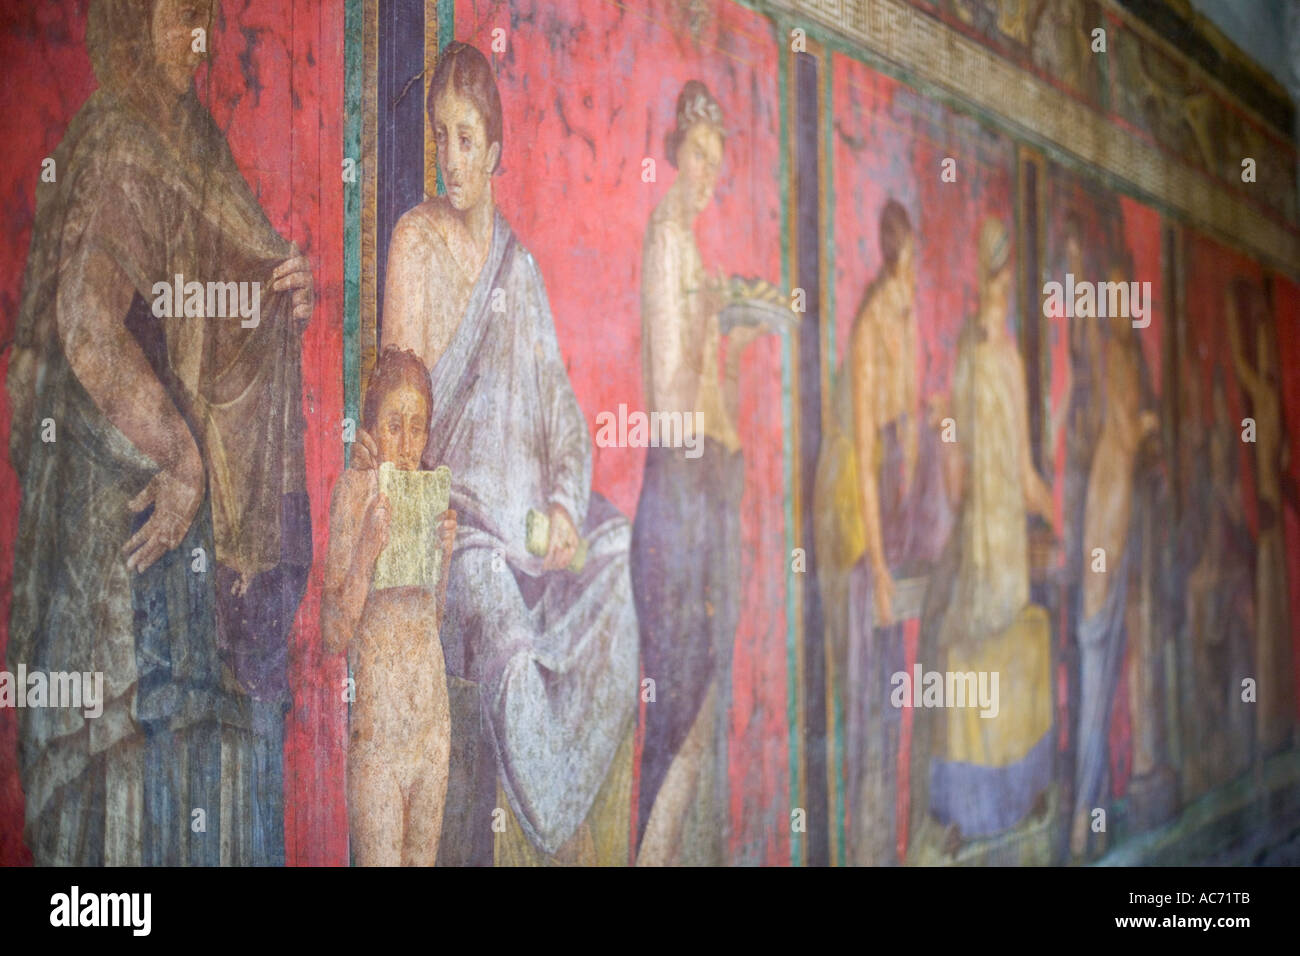 Mysteries fresco in the House of the Mysteries at pompeii italy - Stock Image